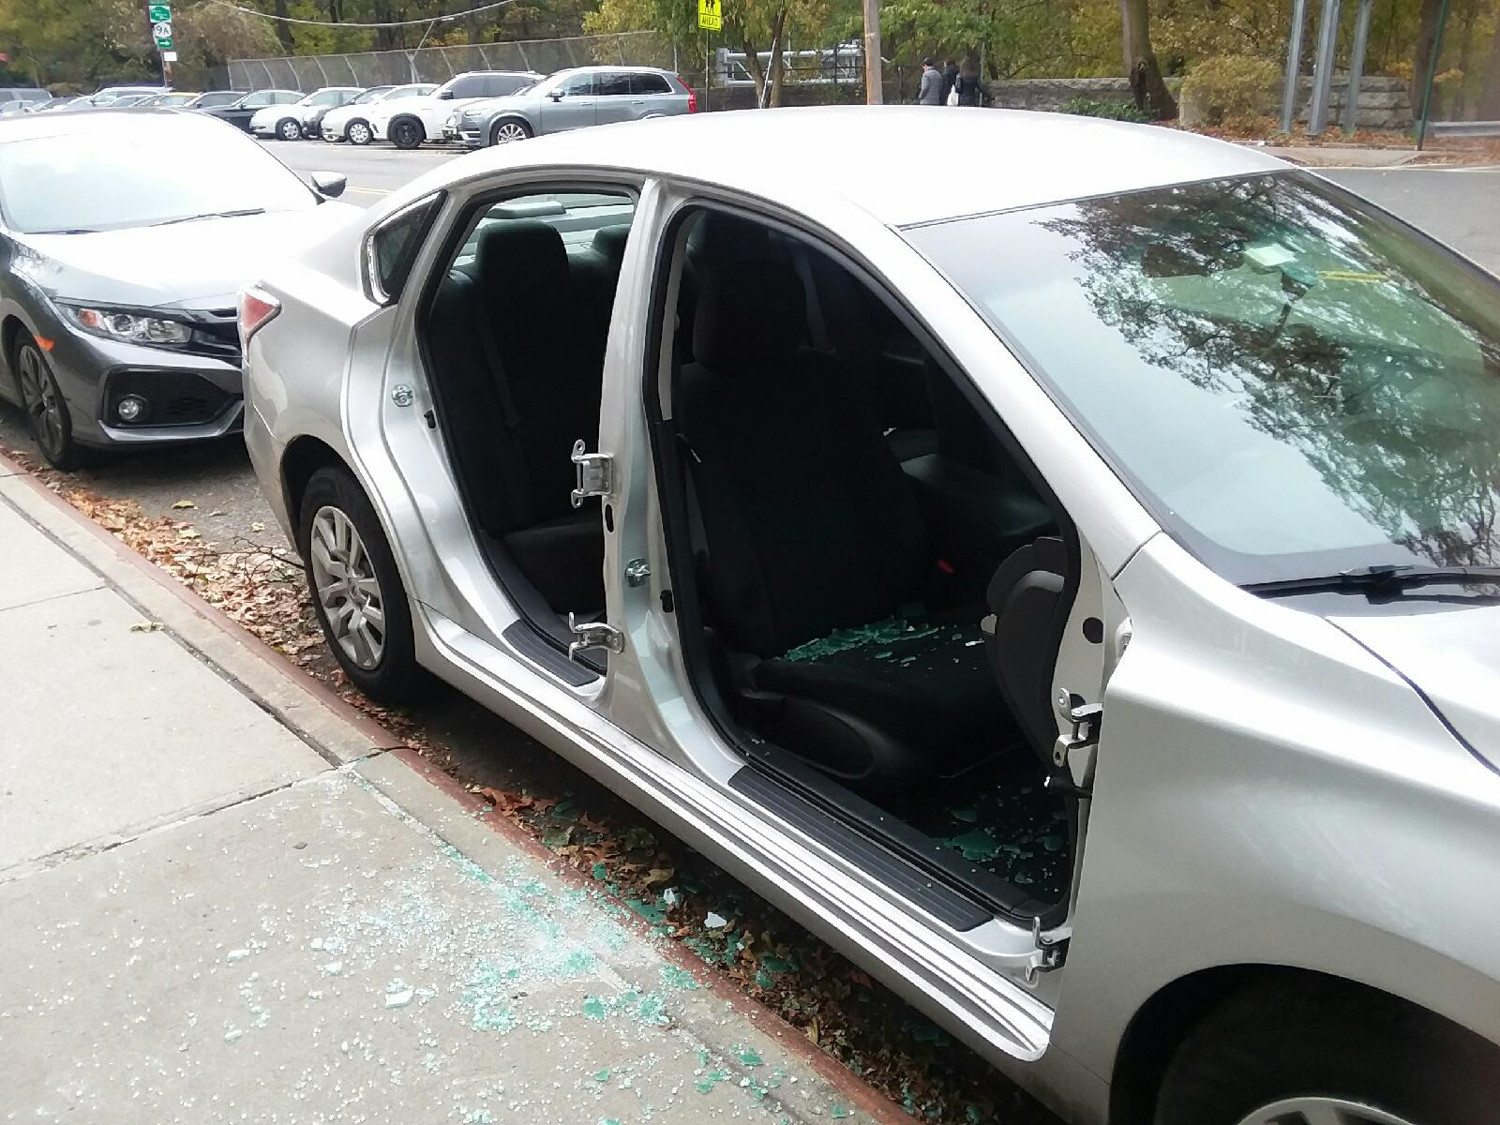 Doors were recently removed from a car near 5400 Fieldston Road in North Riverdale. 'You don't see that every day,' local resident Herb Eysser said. 'Somebody taking the doors off a car? It's bad enough if they take off the wheels.'